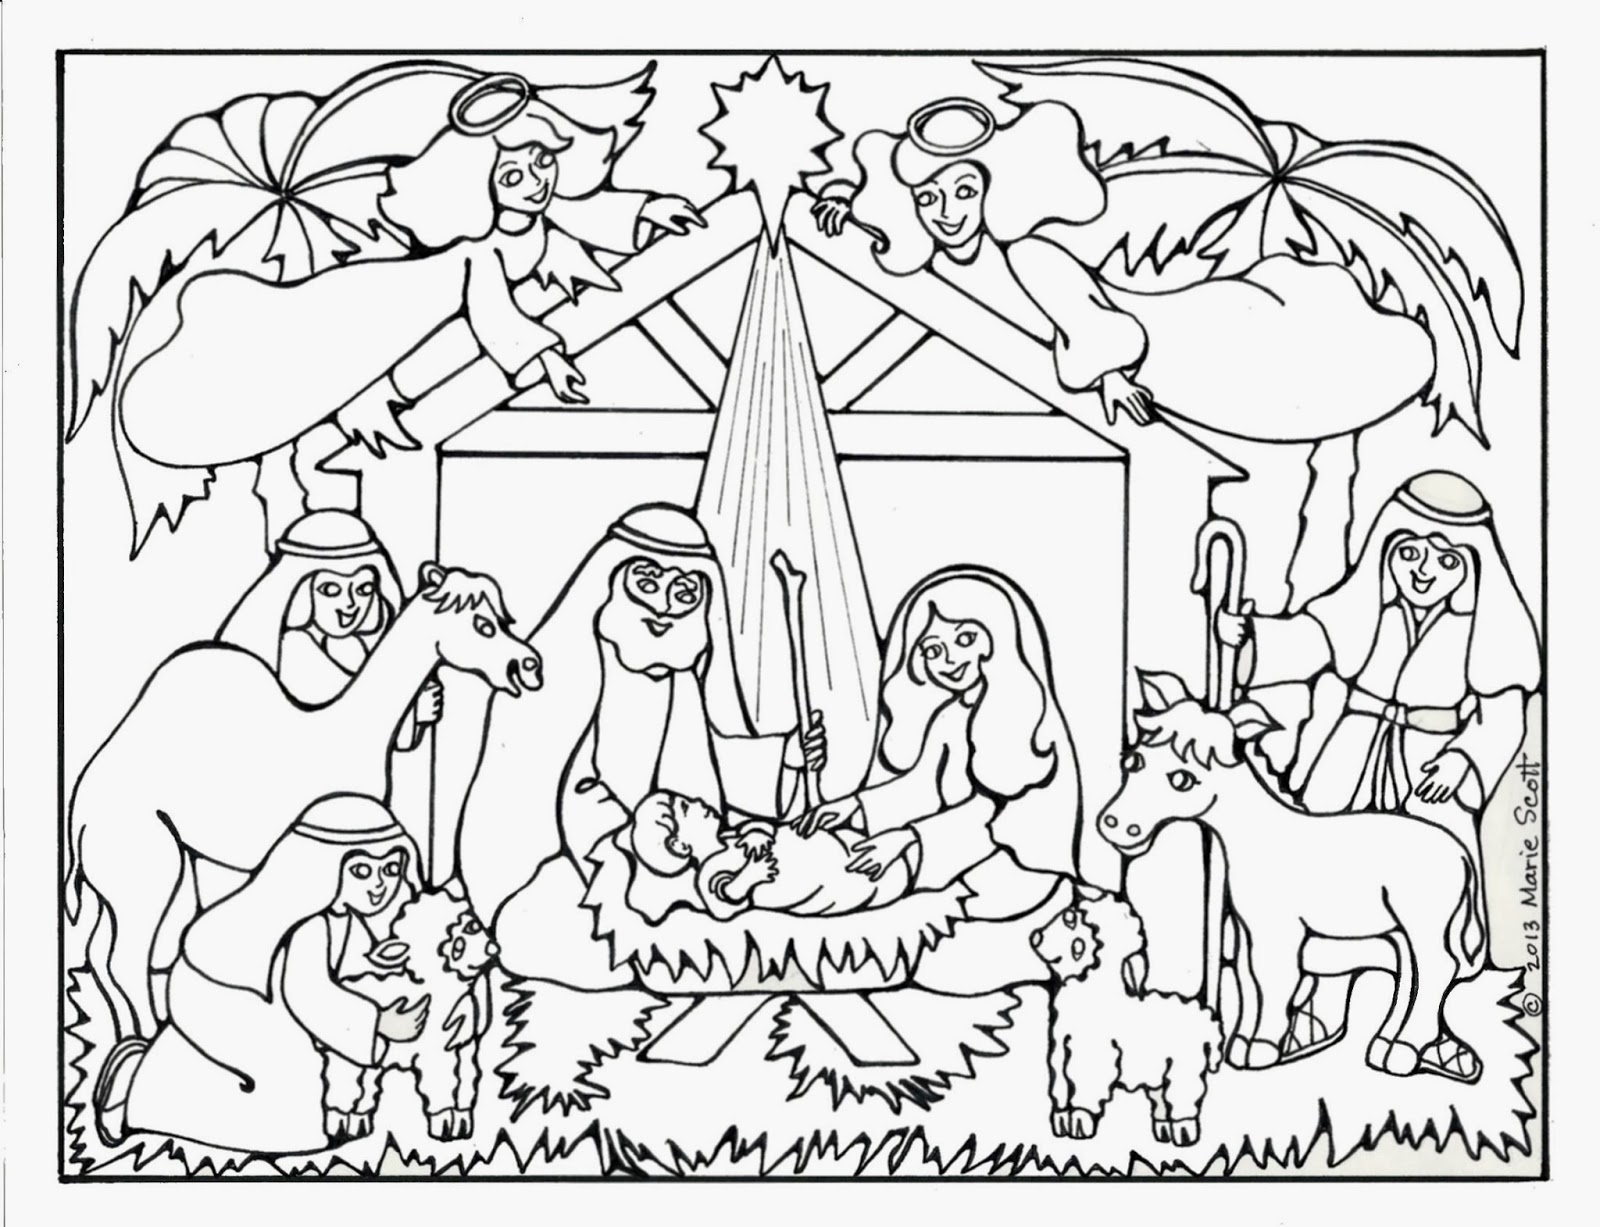 1600x1227 Christmas Story Coloring Pages For Kids Preschool To Funny Print